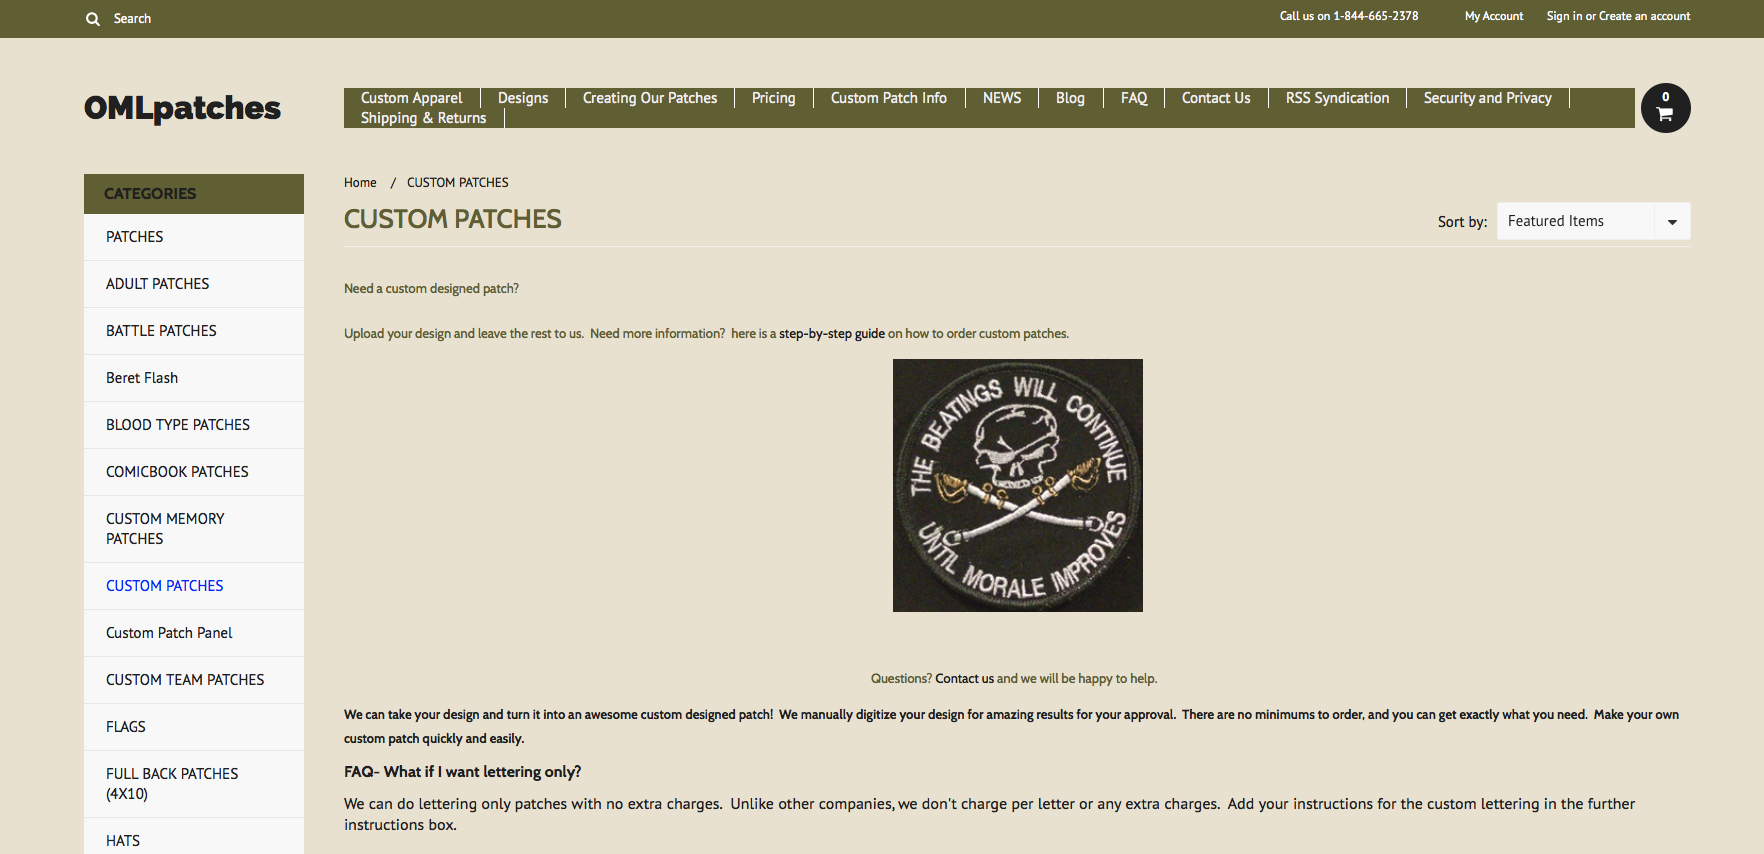 custom patches page at OMLpatches.com